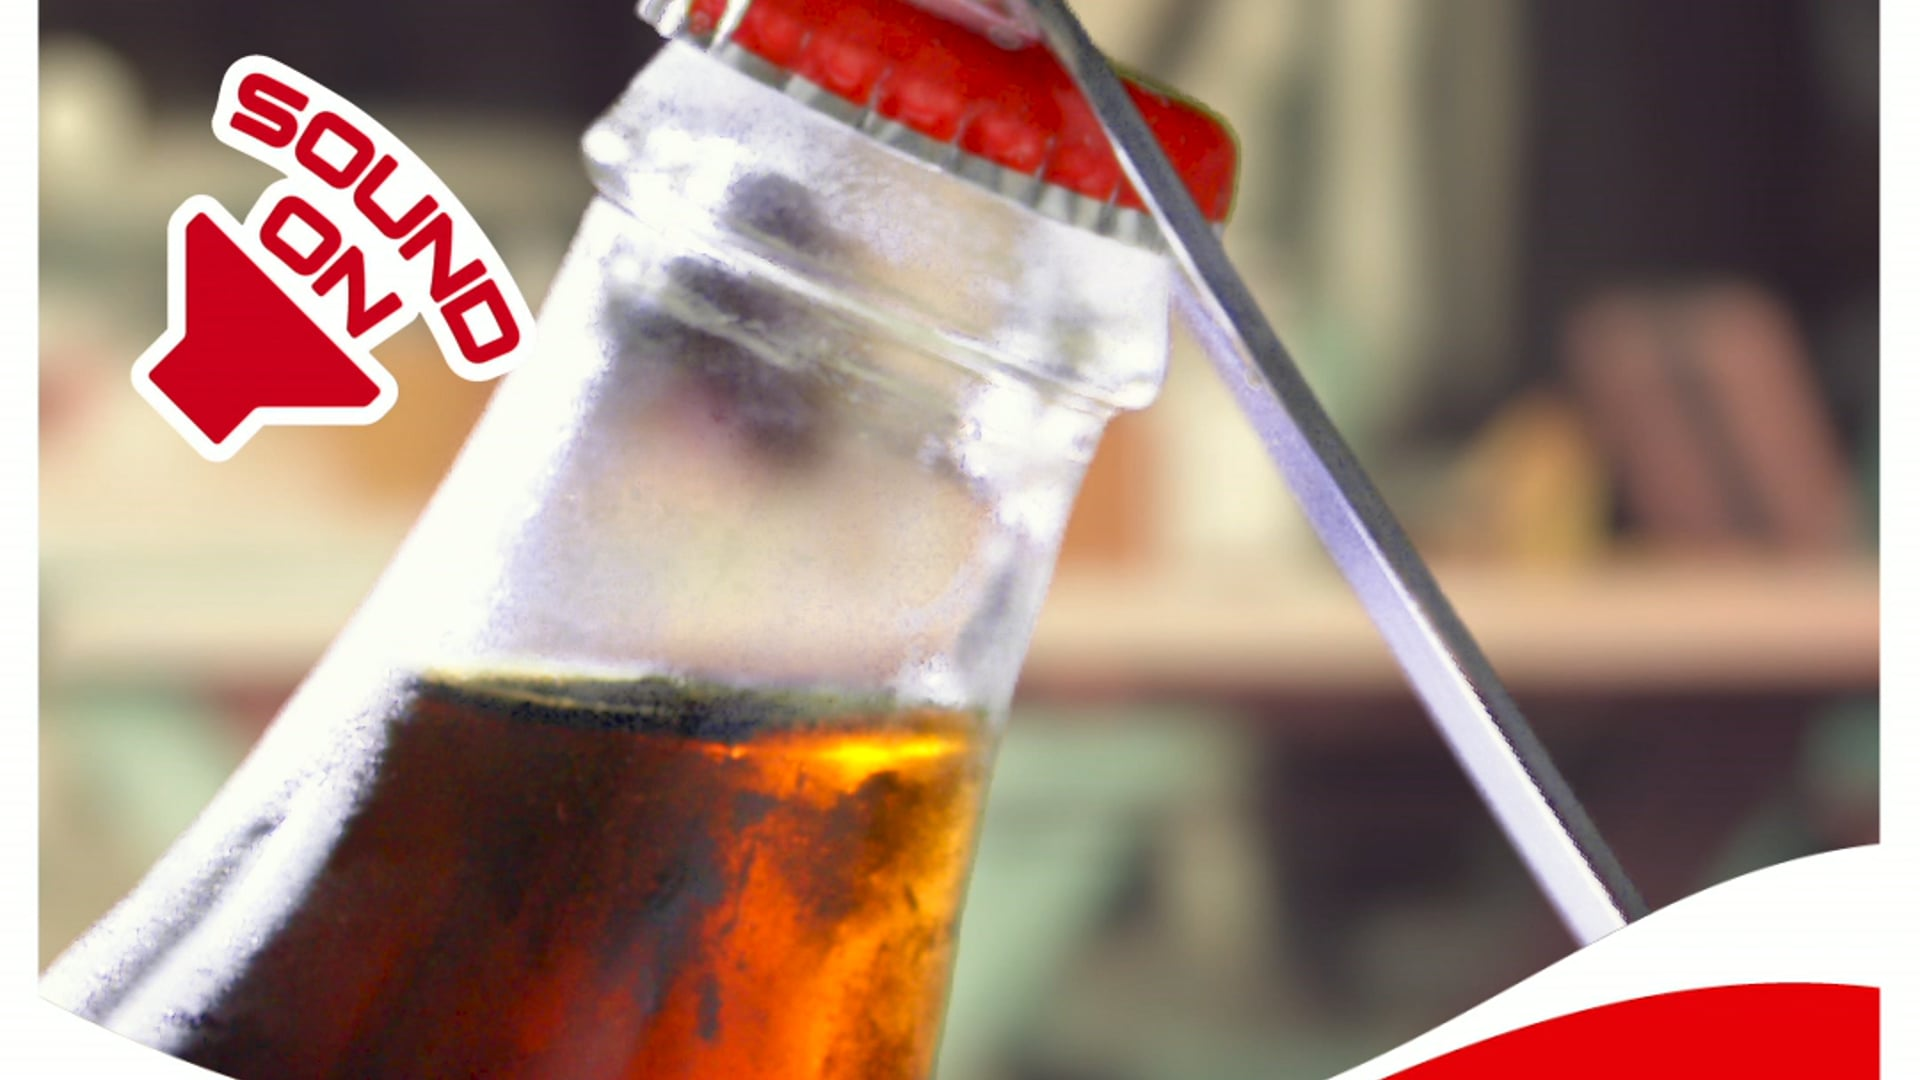 Coke Cola - Its better when everything is open